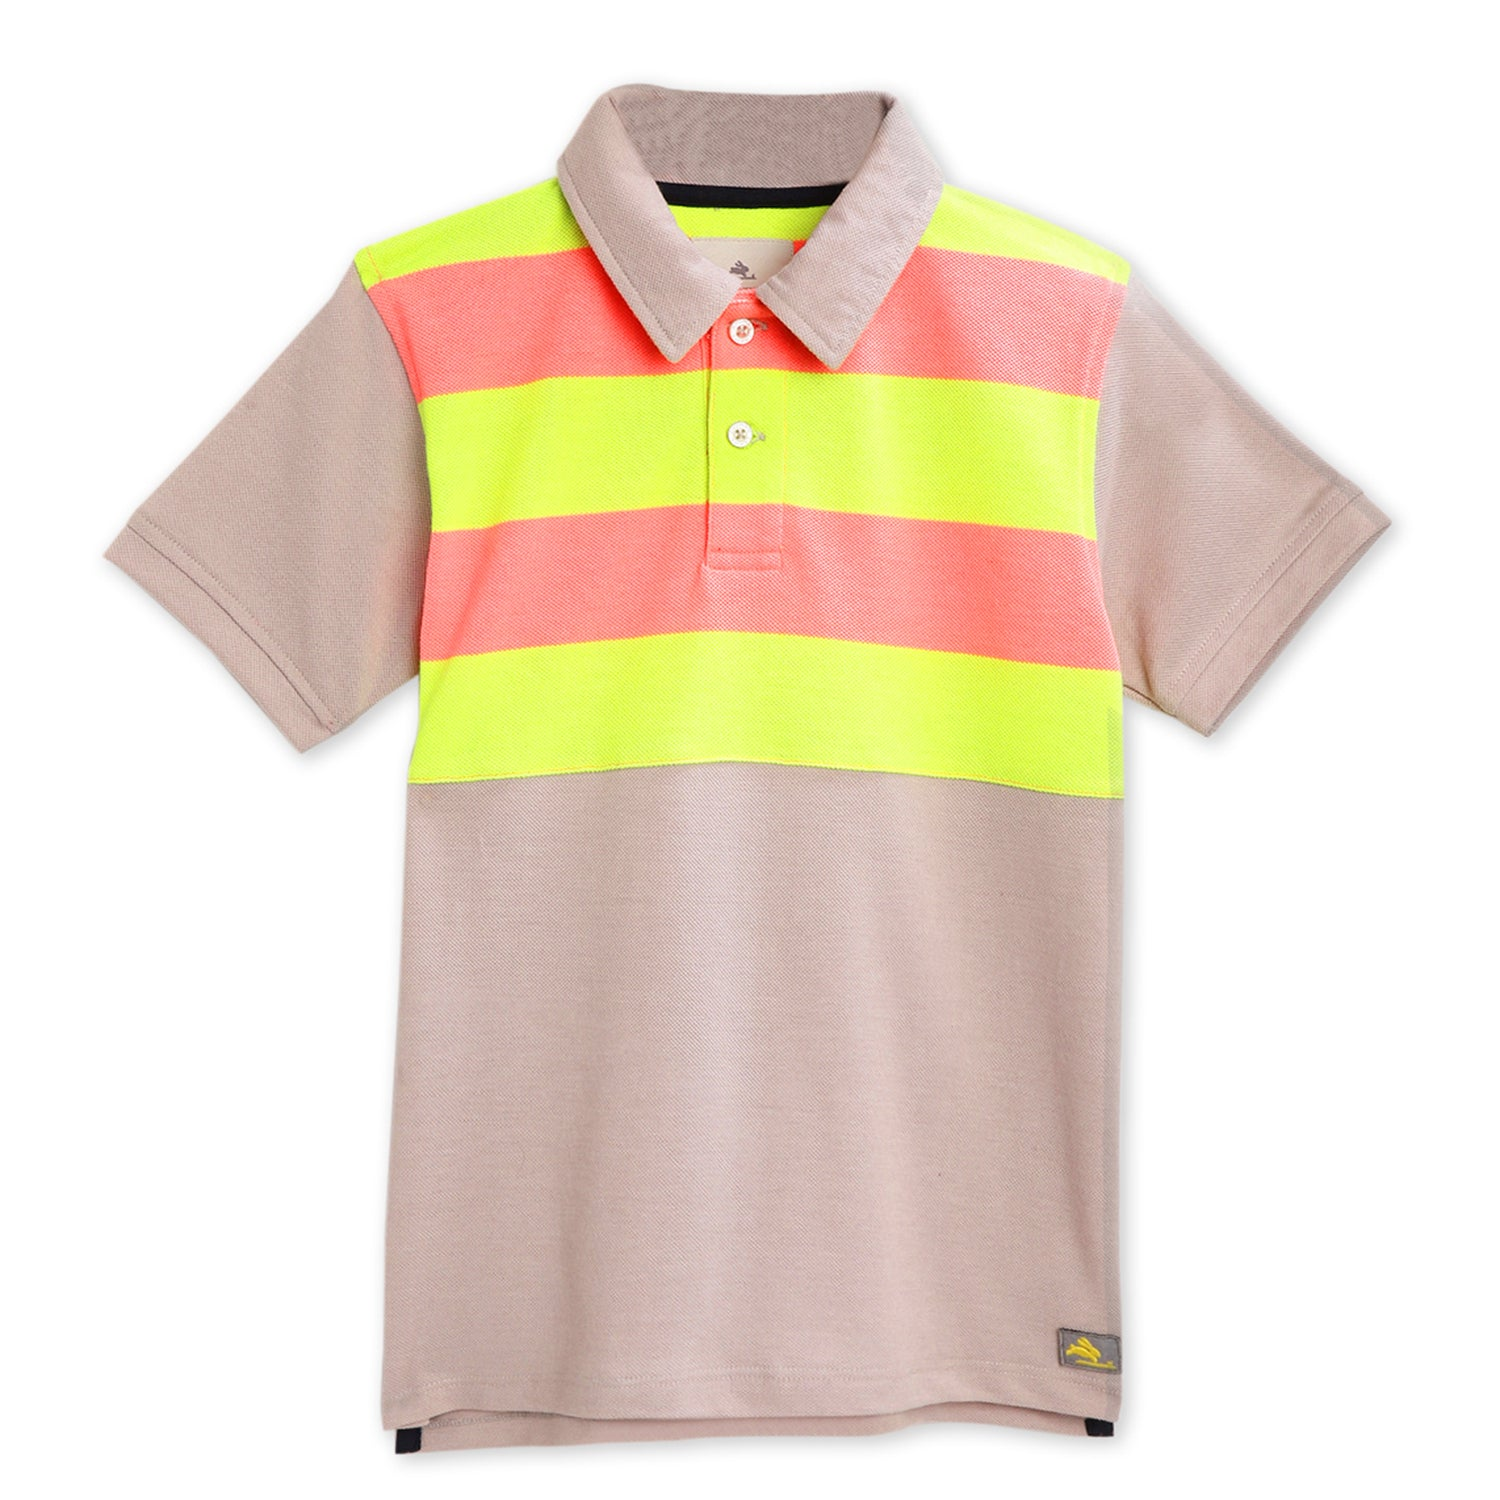 kids-peppery polo tee-ws-hpolo-6155gry